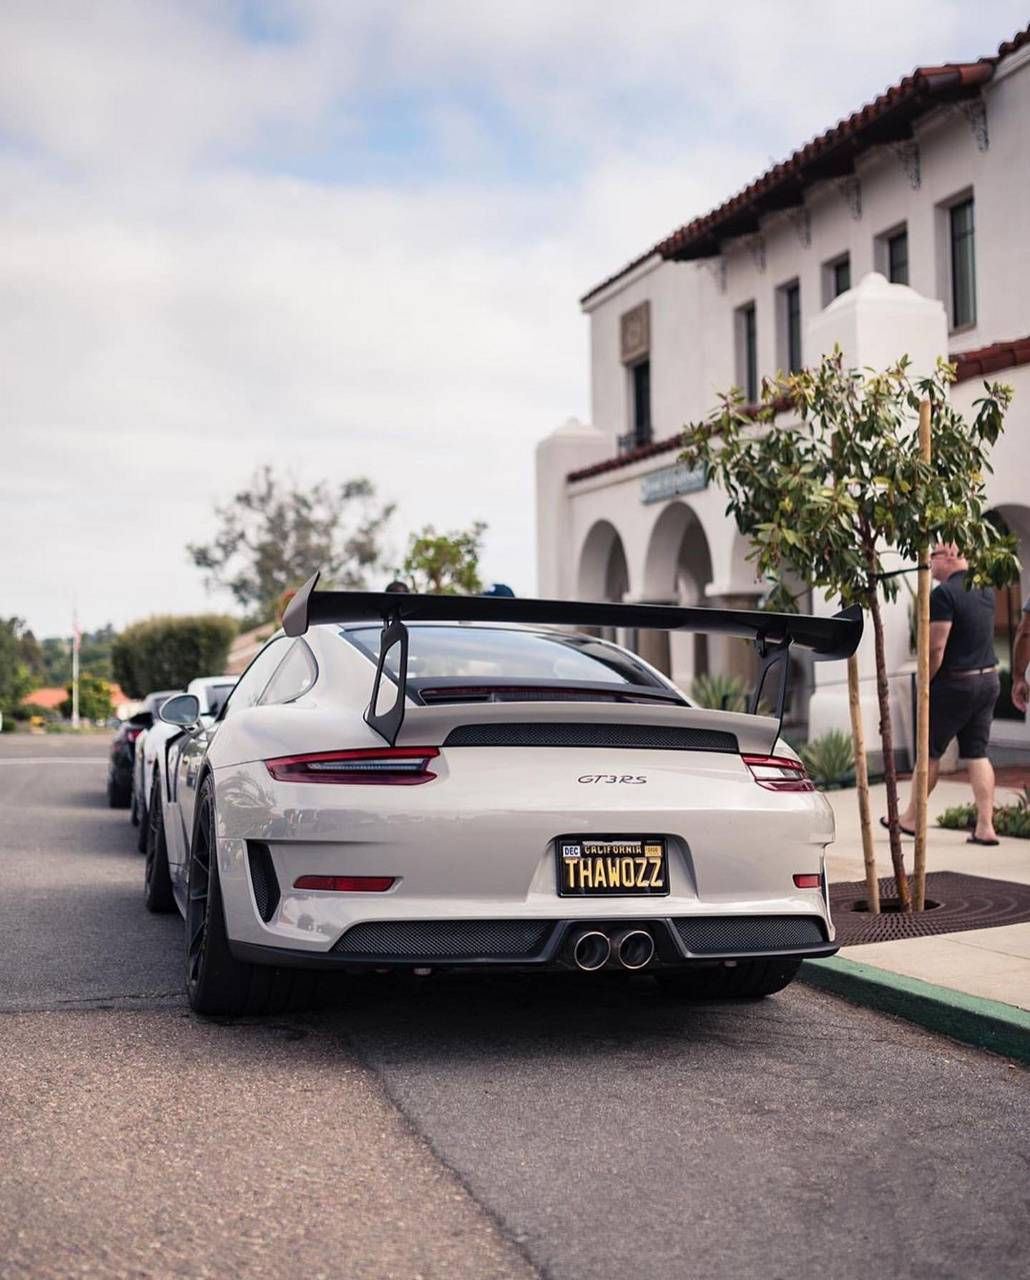 991-2 GT3 RS